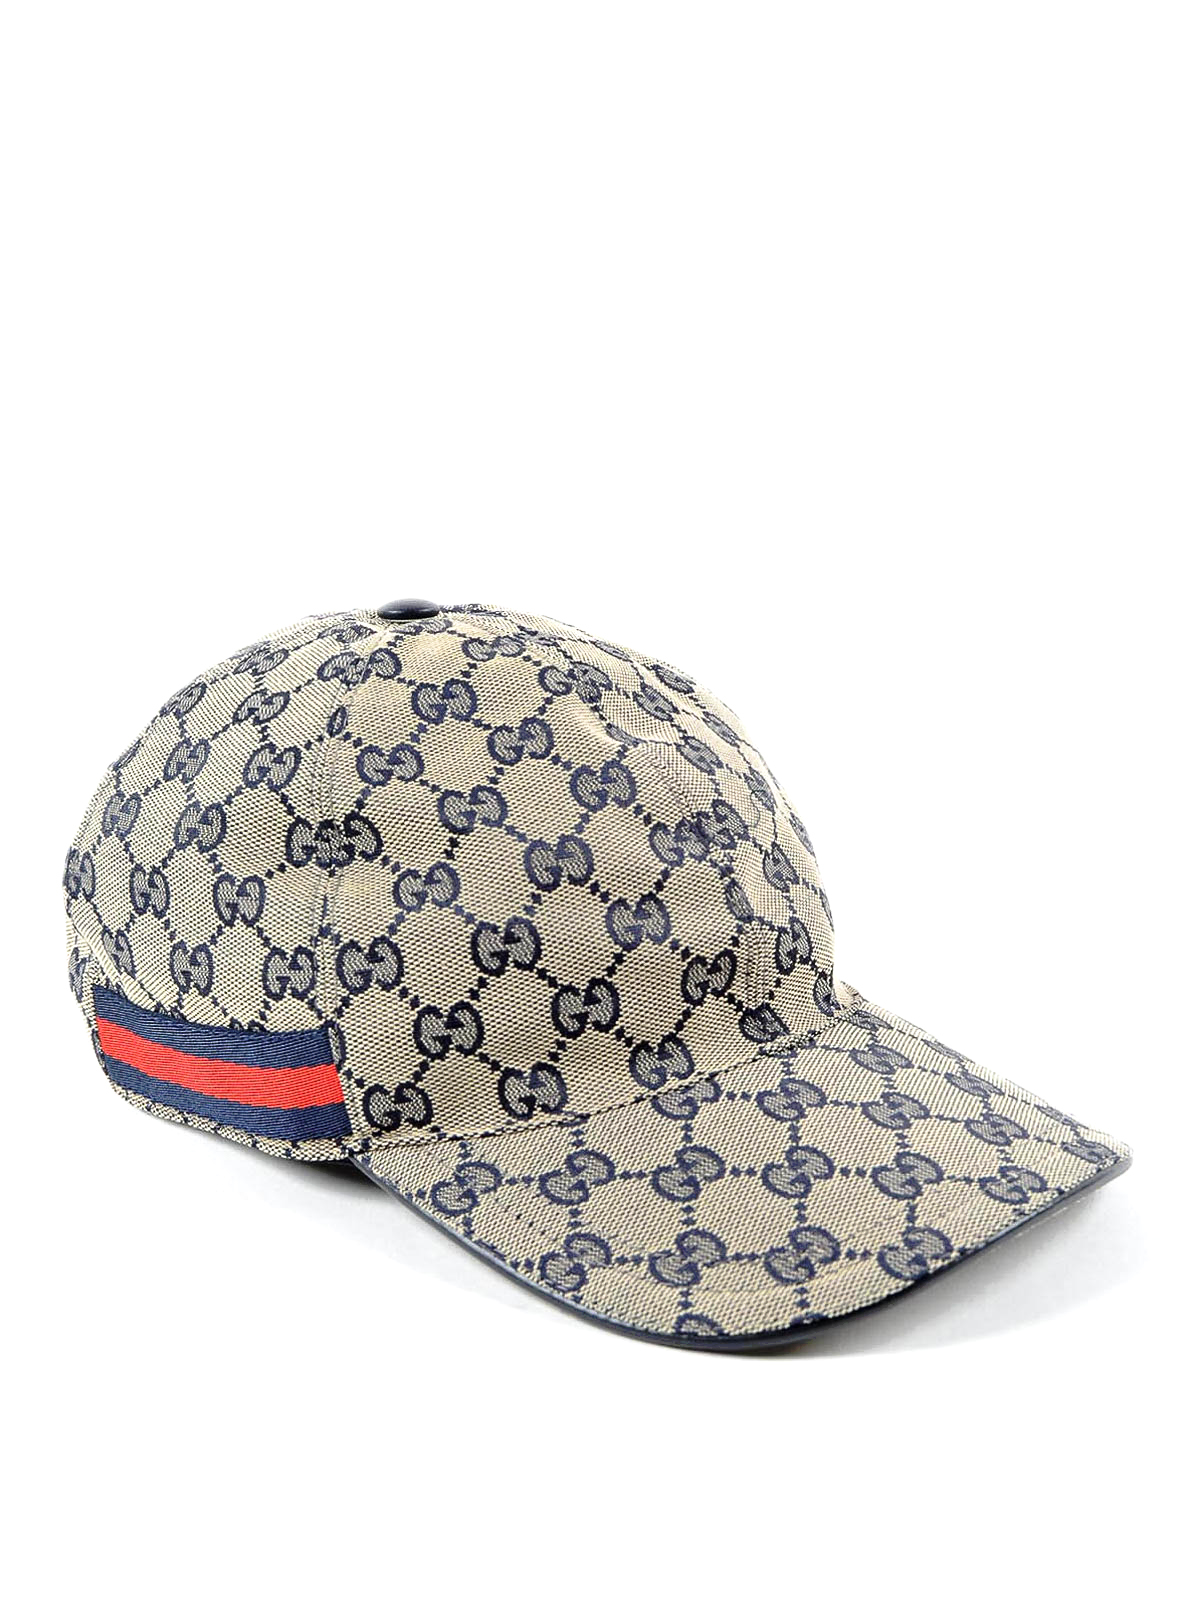 gg supreme baseball hat by gucci hats caps shop. Black Bedroom Furniture Sets. Home Design Ideas